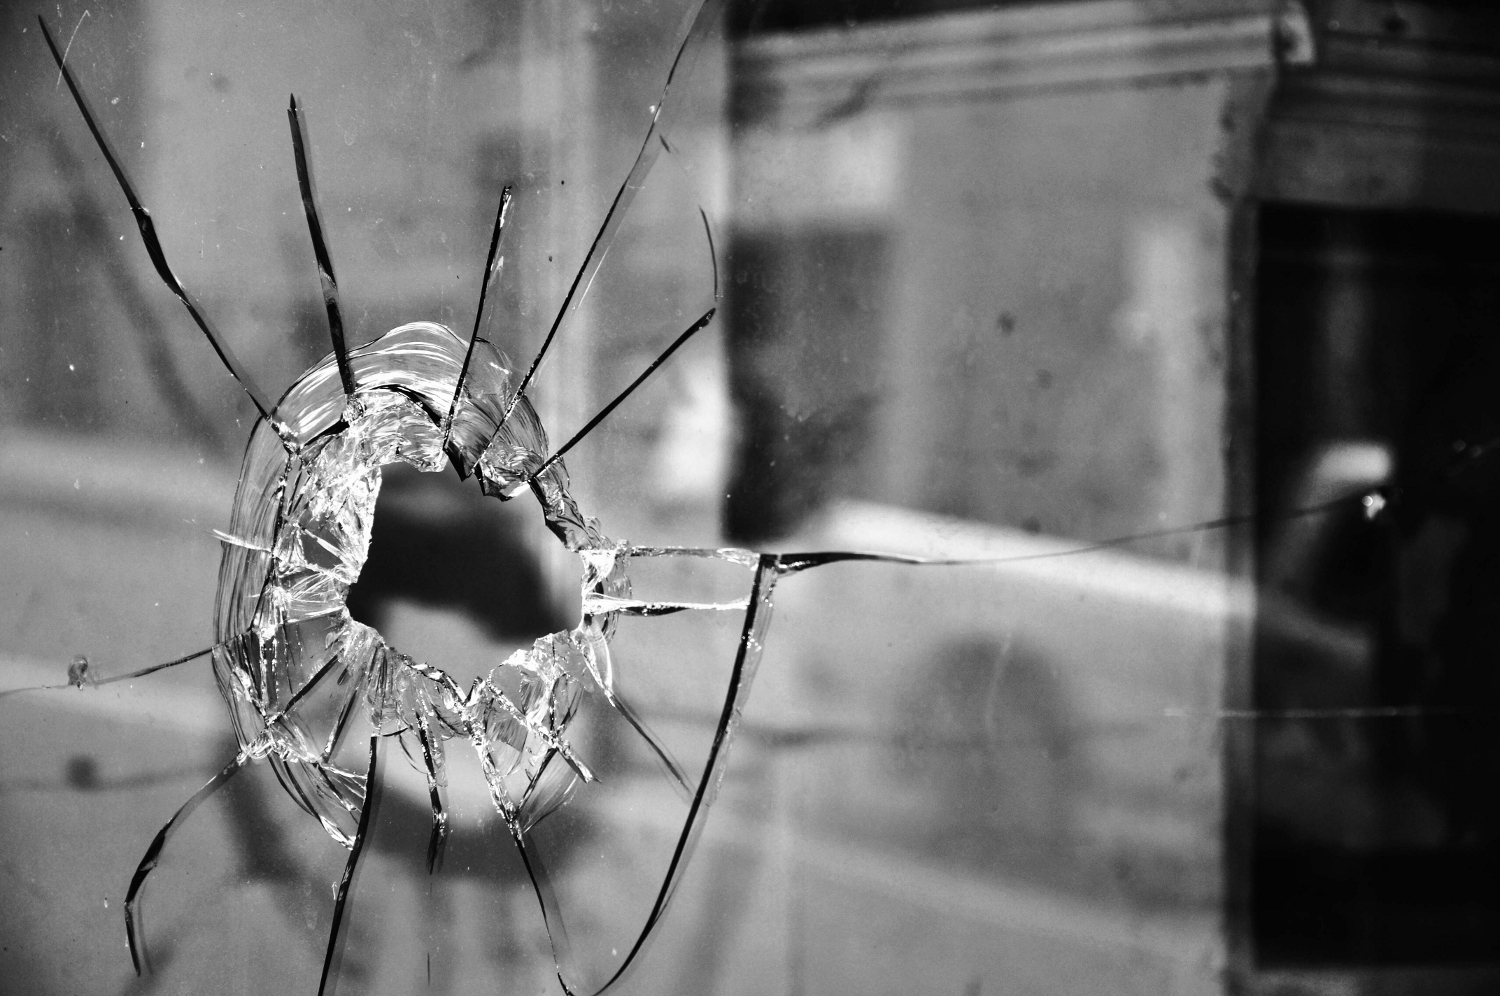 Bullet Hole - Jamestown, NY